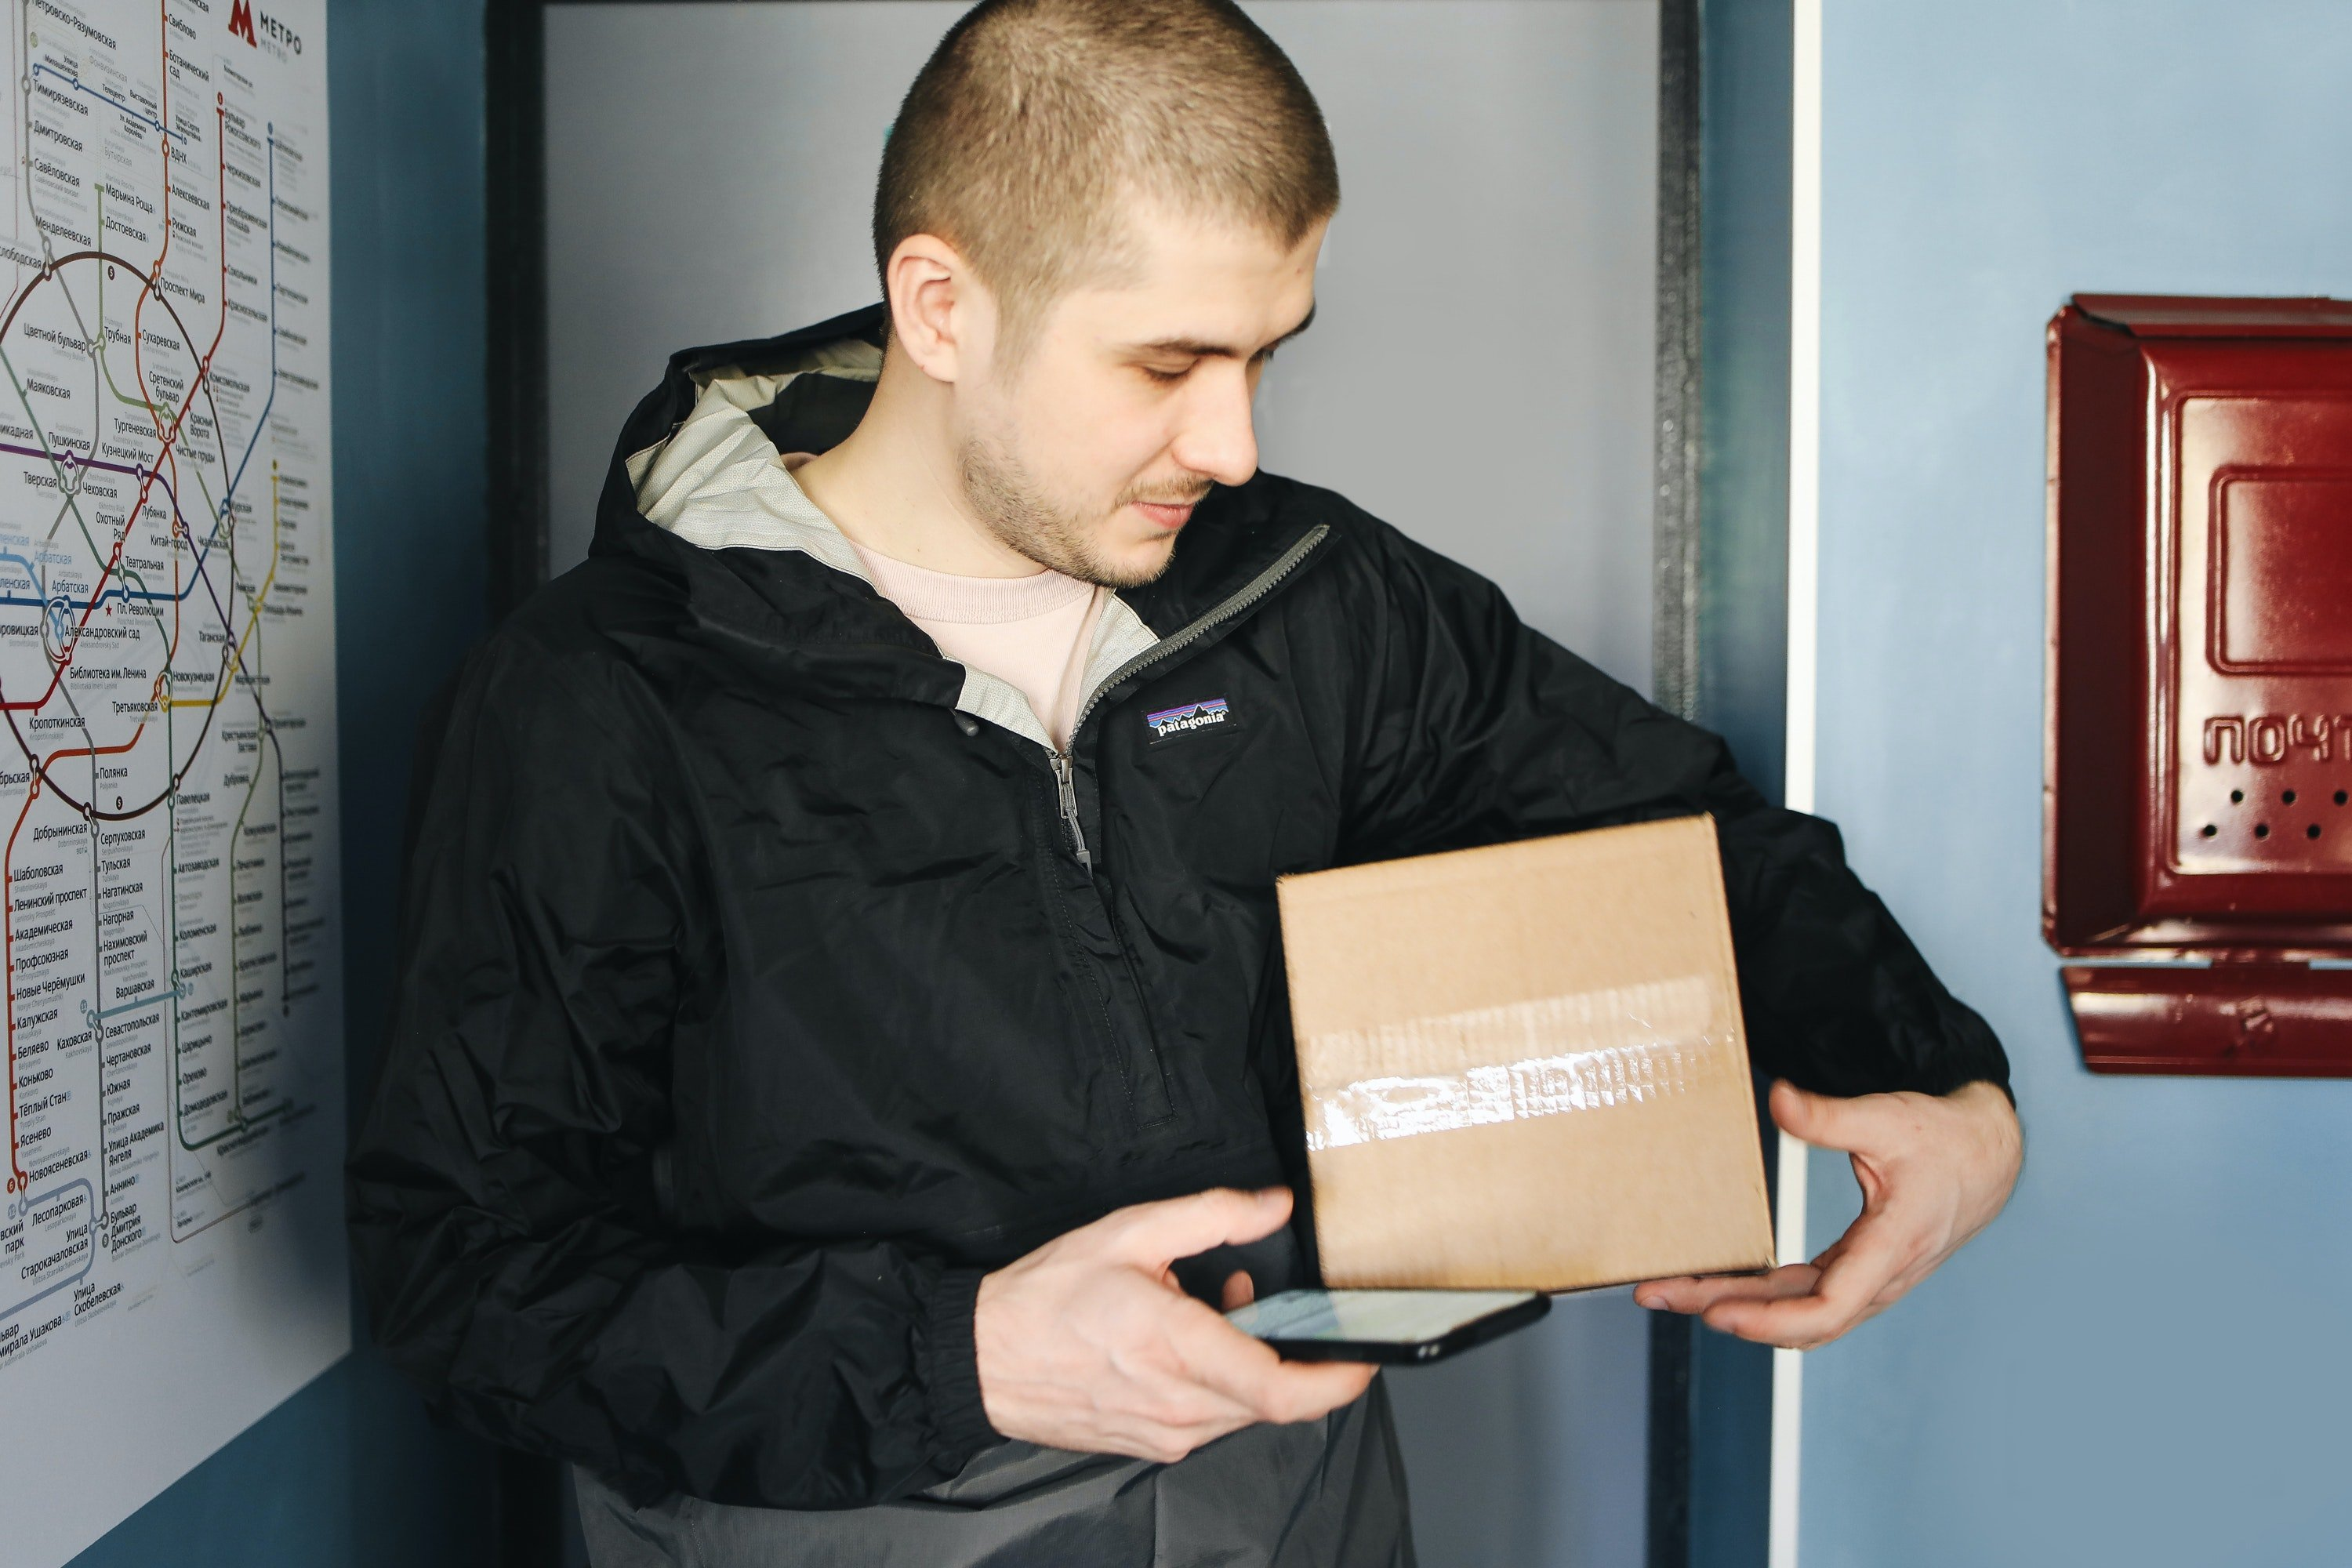 Aaron was happy after completing his first delivery | Photo: Pexels